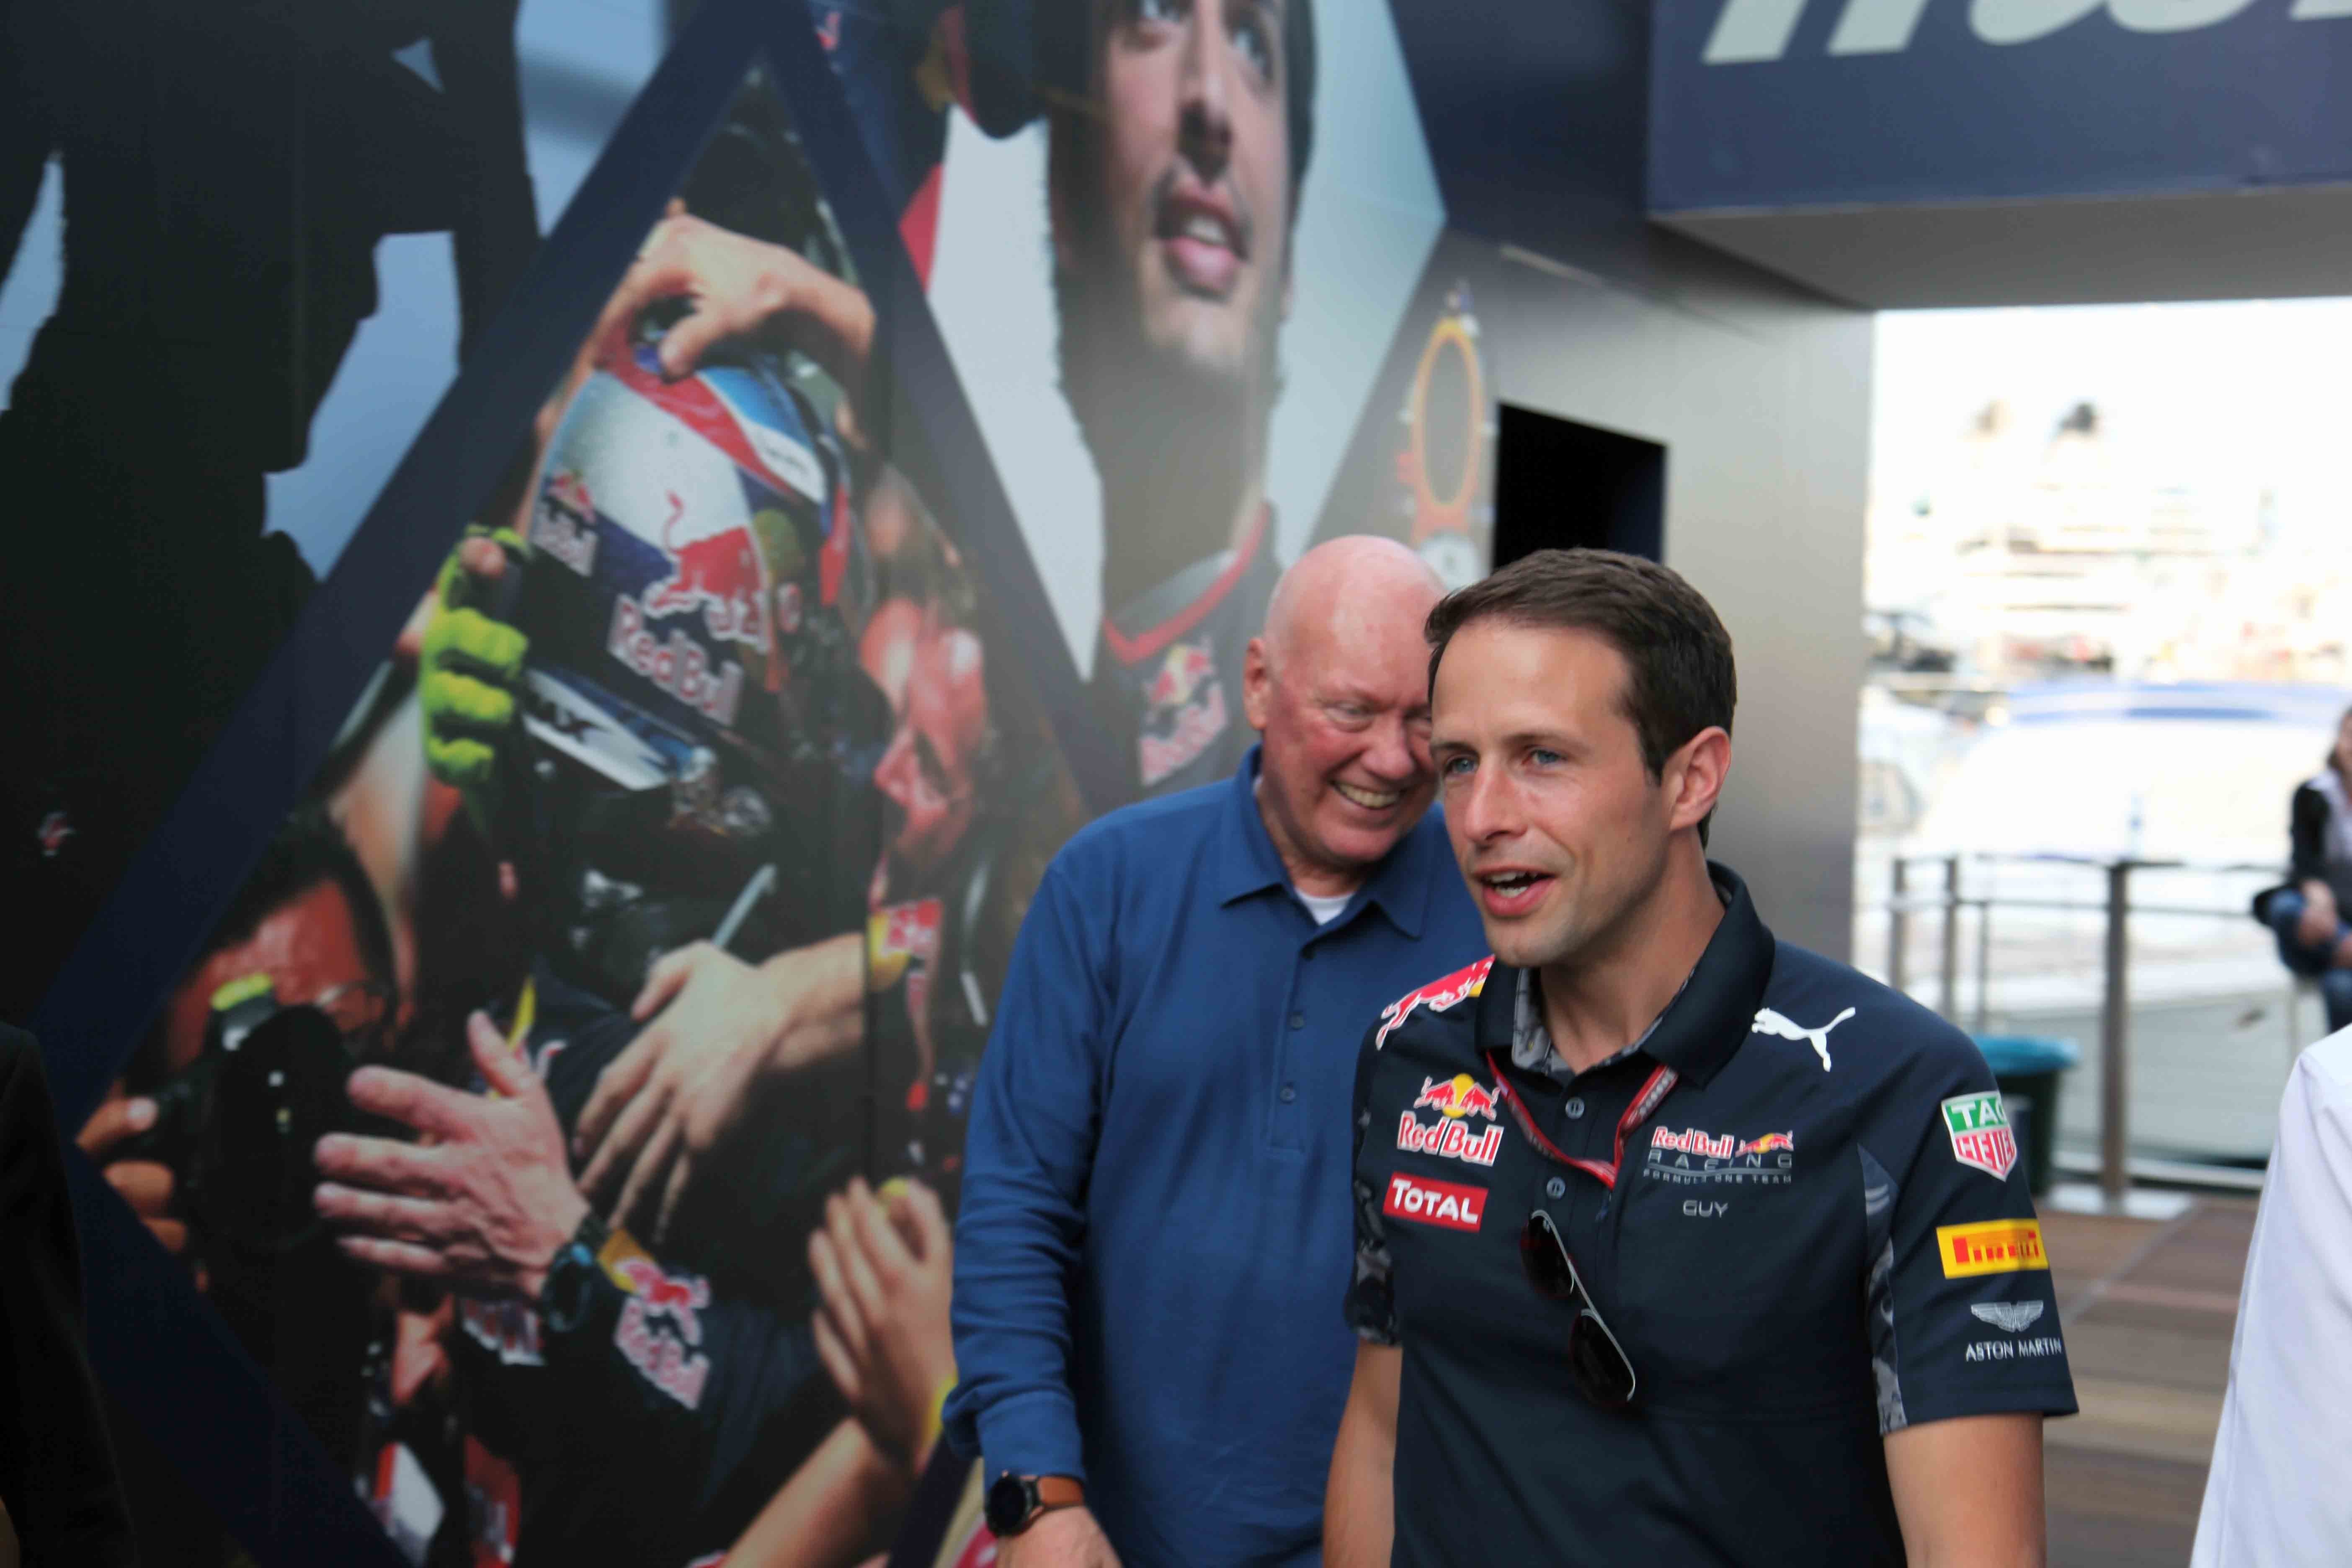 Jean-Claude Biver arrives at the Red Bull Racing station.  Photo Report: Behind The Scenes At The Monaco Grand Prix 2016 With TAG Heuer CEO Jean-Claude Biver Photo Report: Behind The Scenes At The Monaco Grand Prix 2016 With TAG Heuer CEO Jean-Claude Biver IMG 0280